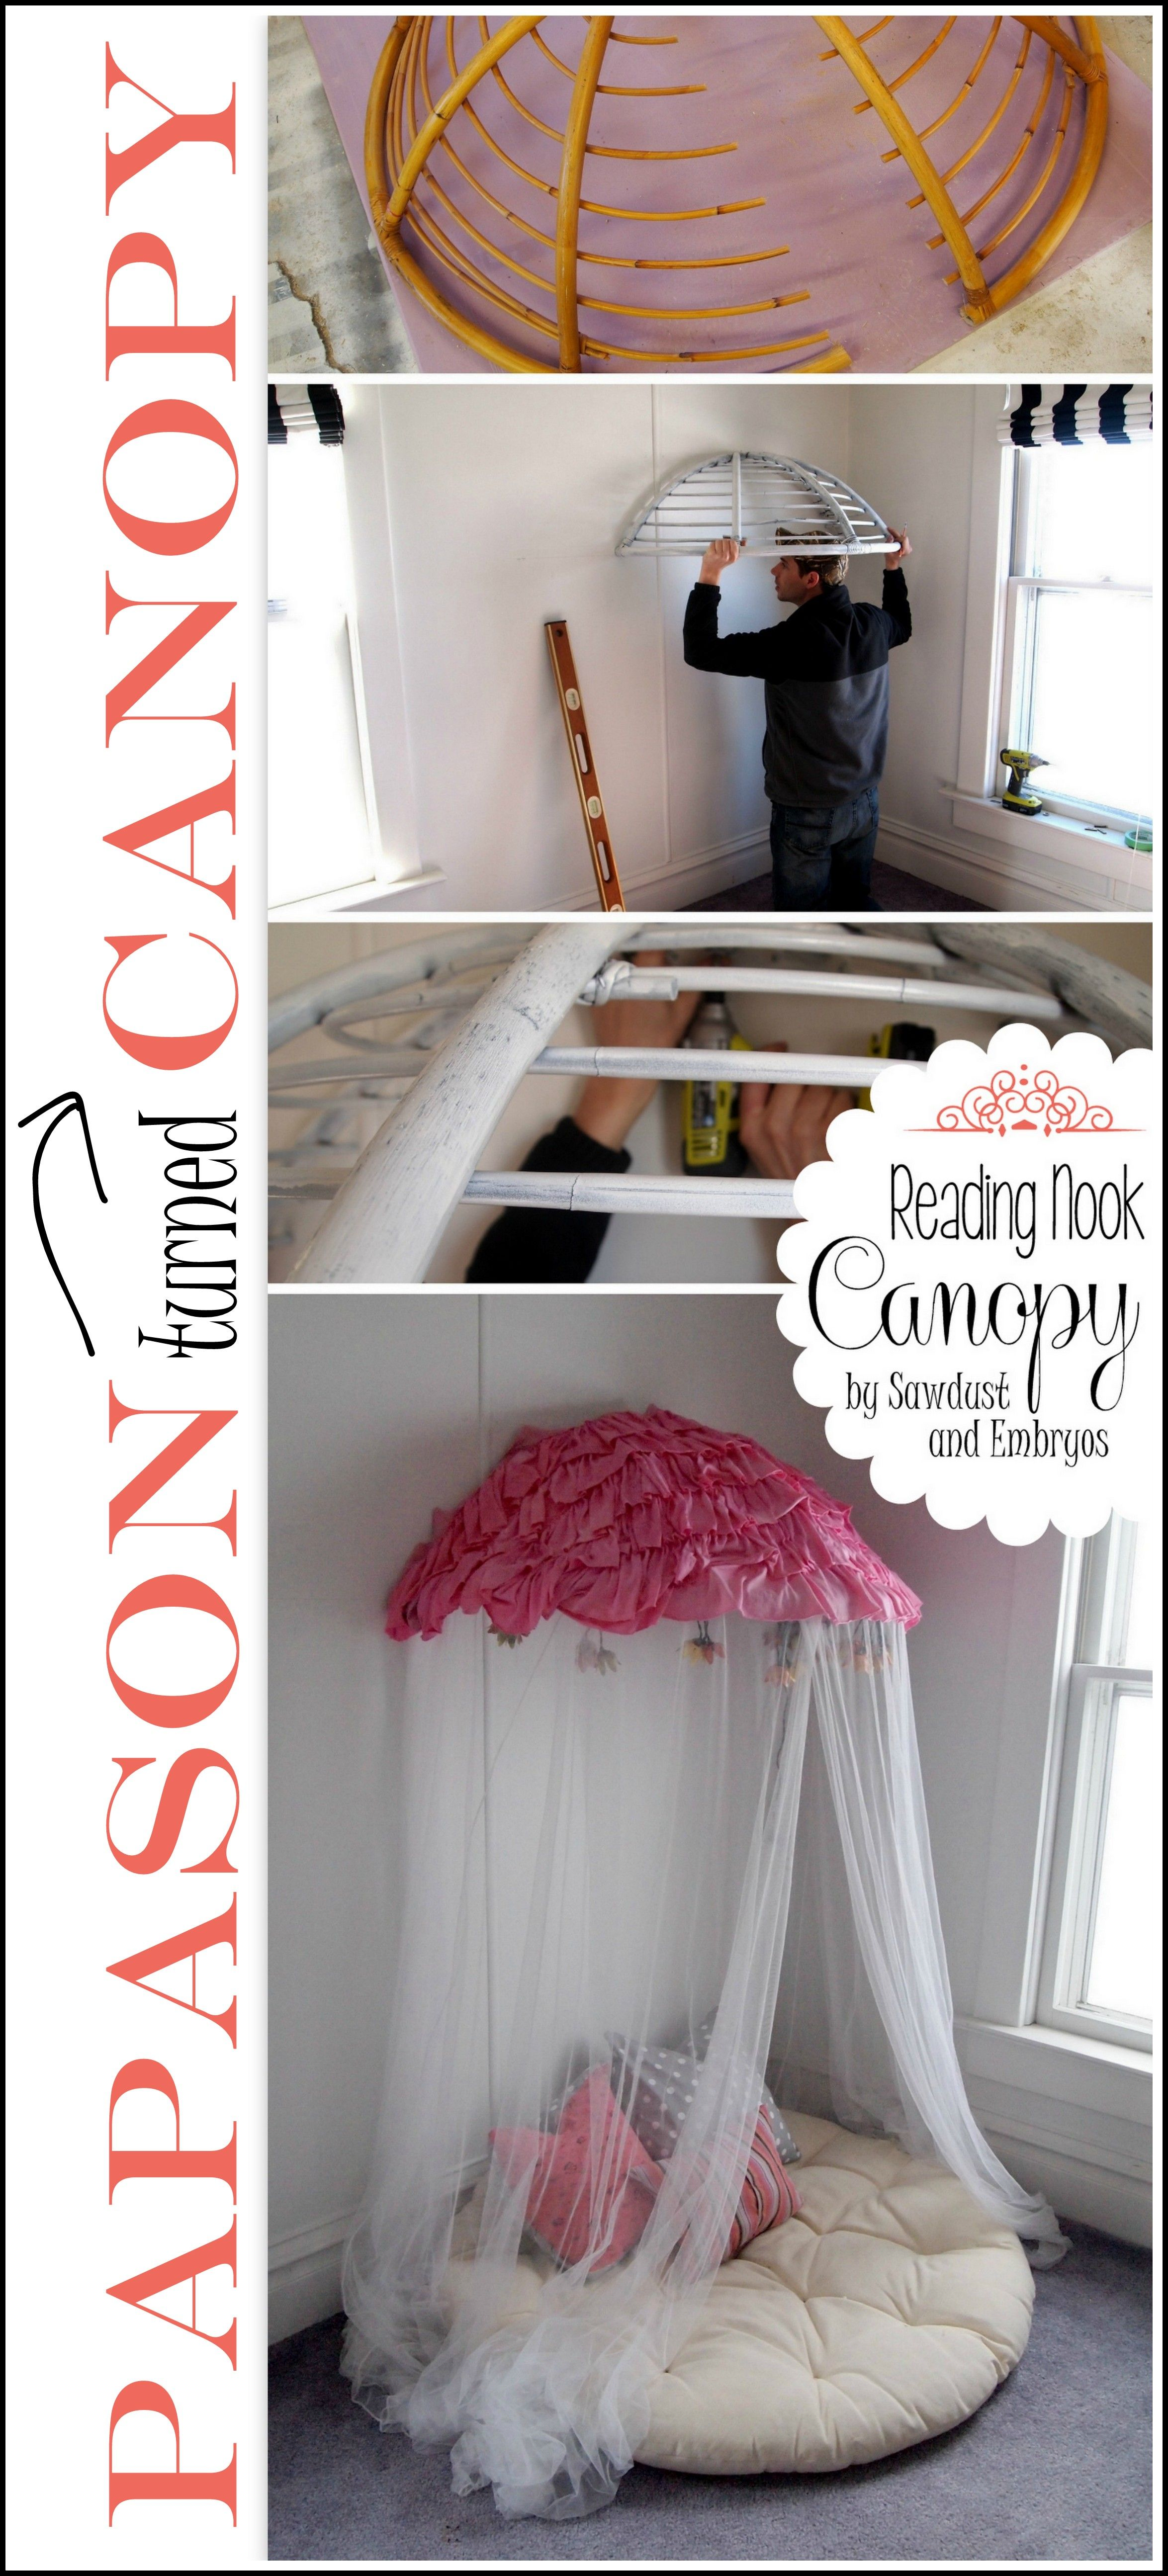 Turn Your Old Papasan Into A Canopy Reading Nook Diy